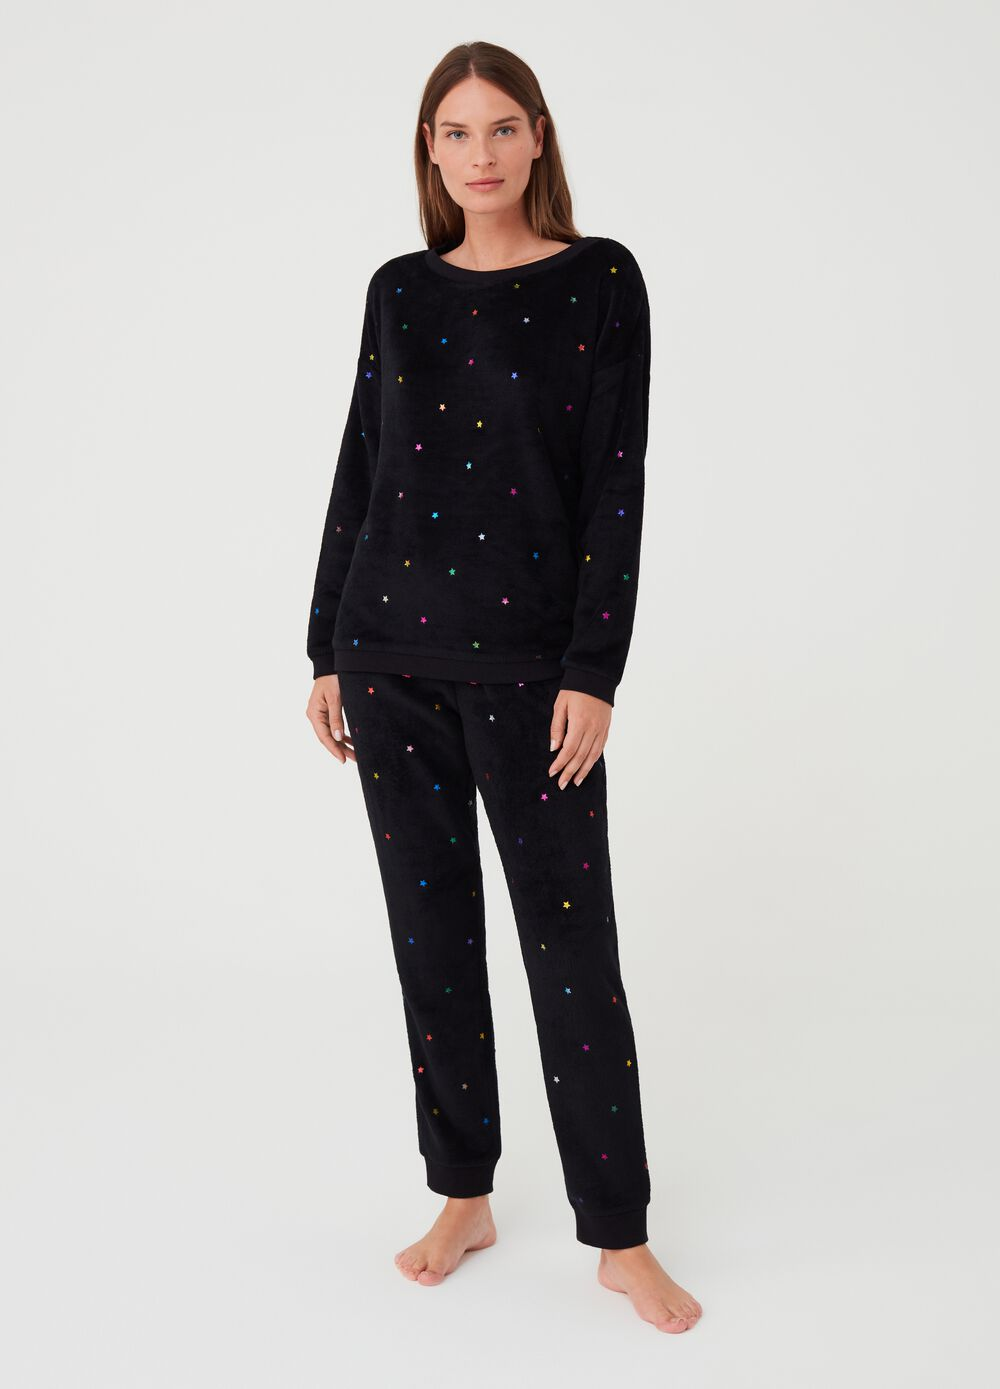 Pyjamas with foil print and star pattern